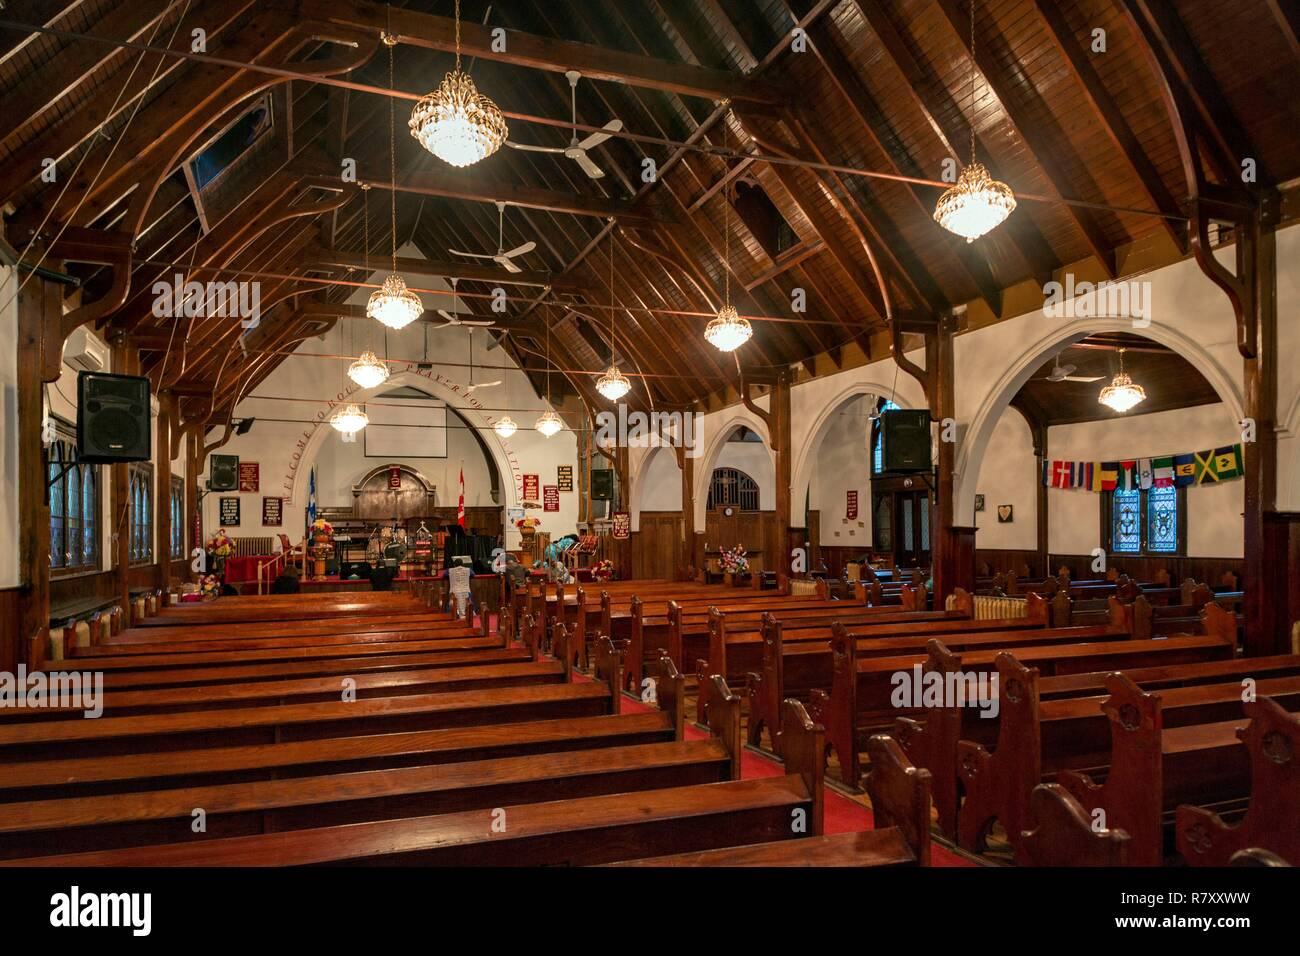 Canada, Quebec province, Montreal, Religious Heritage, Church of the Advent in Westmount - Stock Image